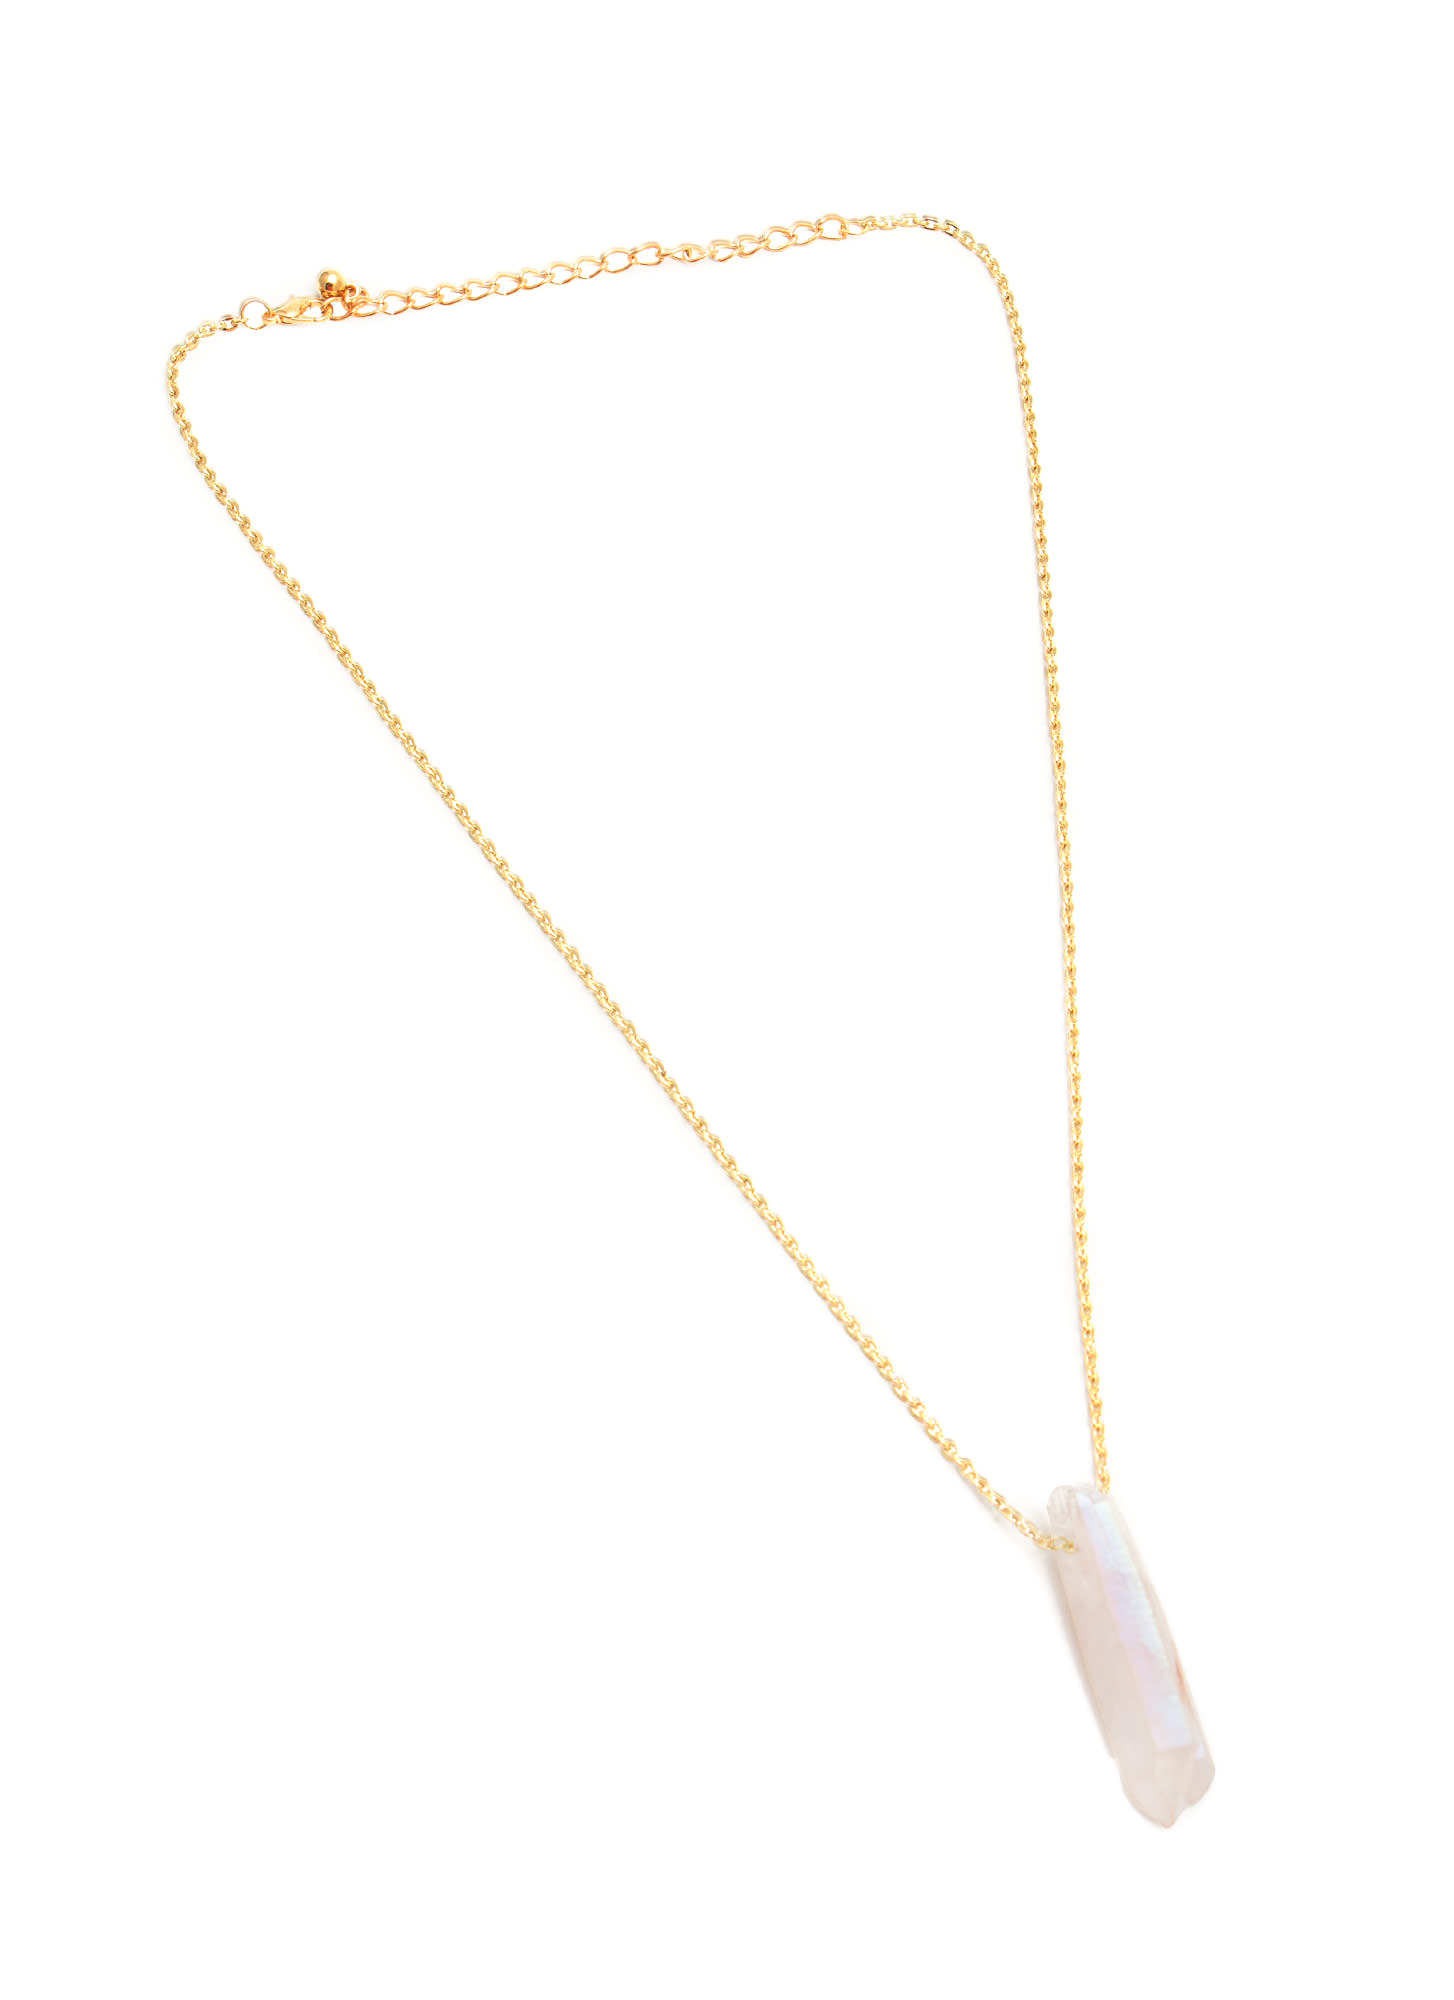 Iridescent Stone Pendant Necklace GOLDCLEAR